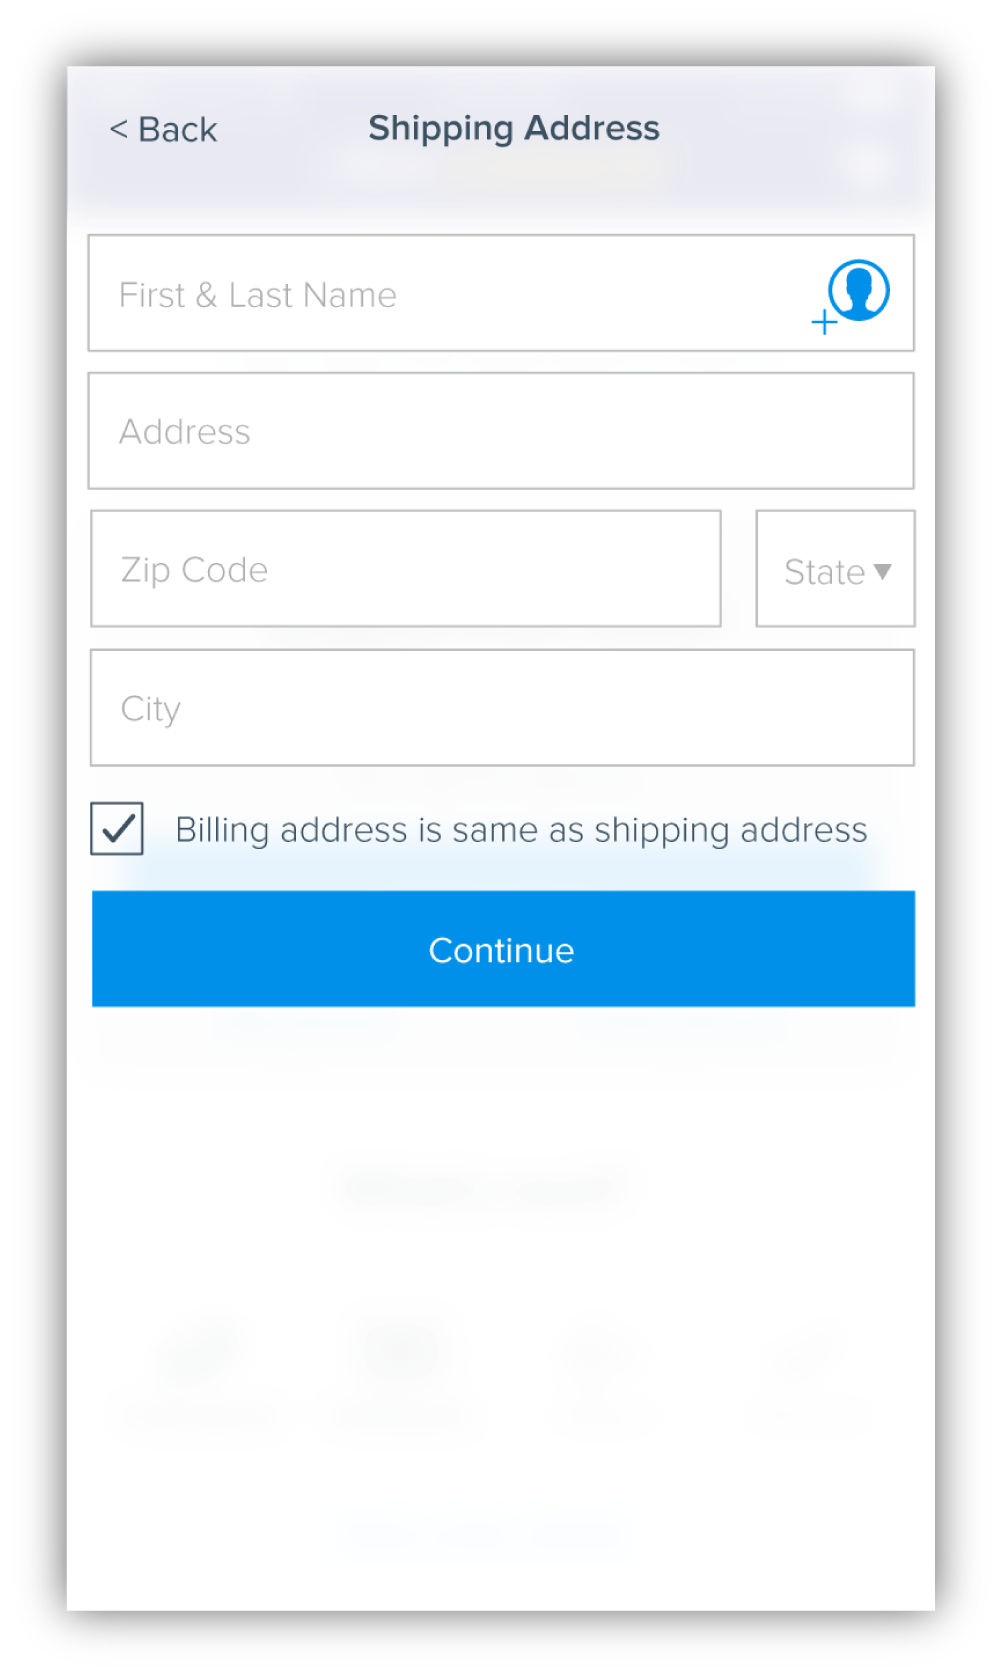 Asking for the user's zip code before state or city takes advantage of a feature that is able to automatically populate the city and state based on the zip code. This allows the user to skip 2 form fields, thus moving them through the flow much faster.